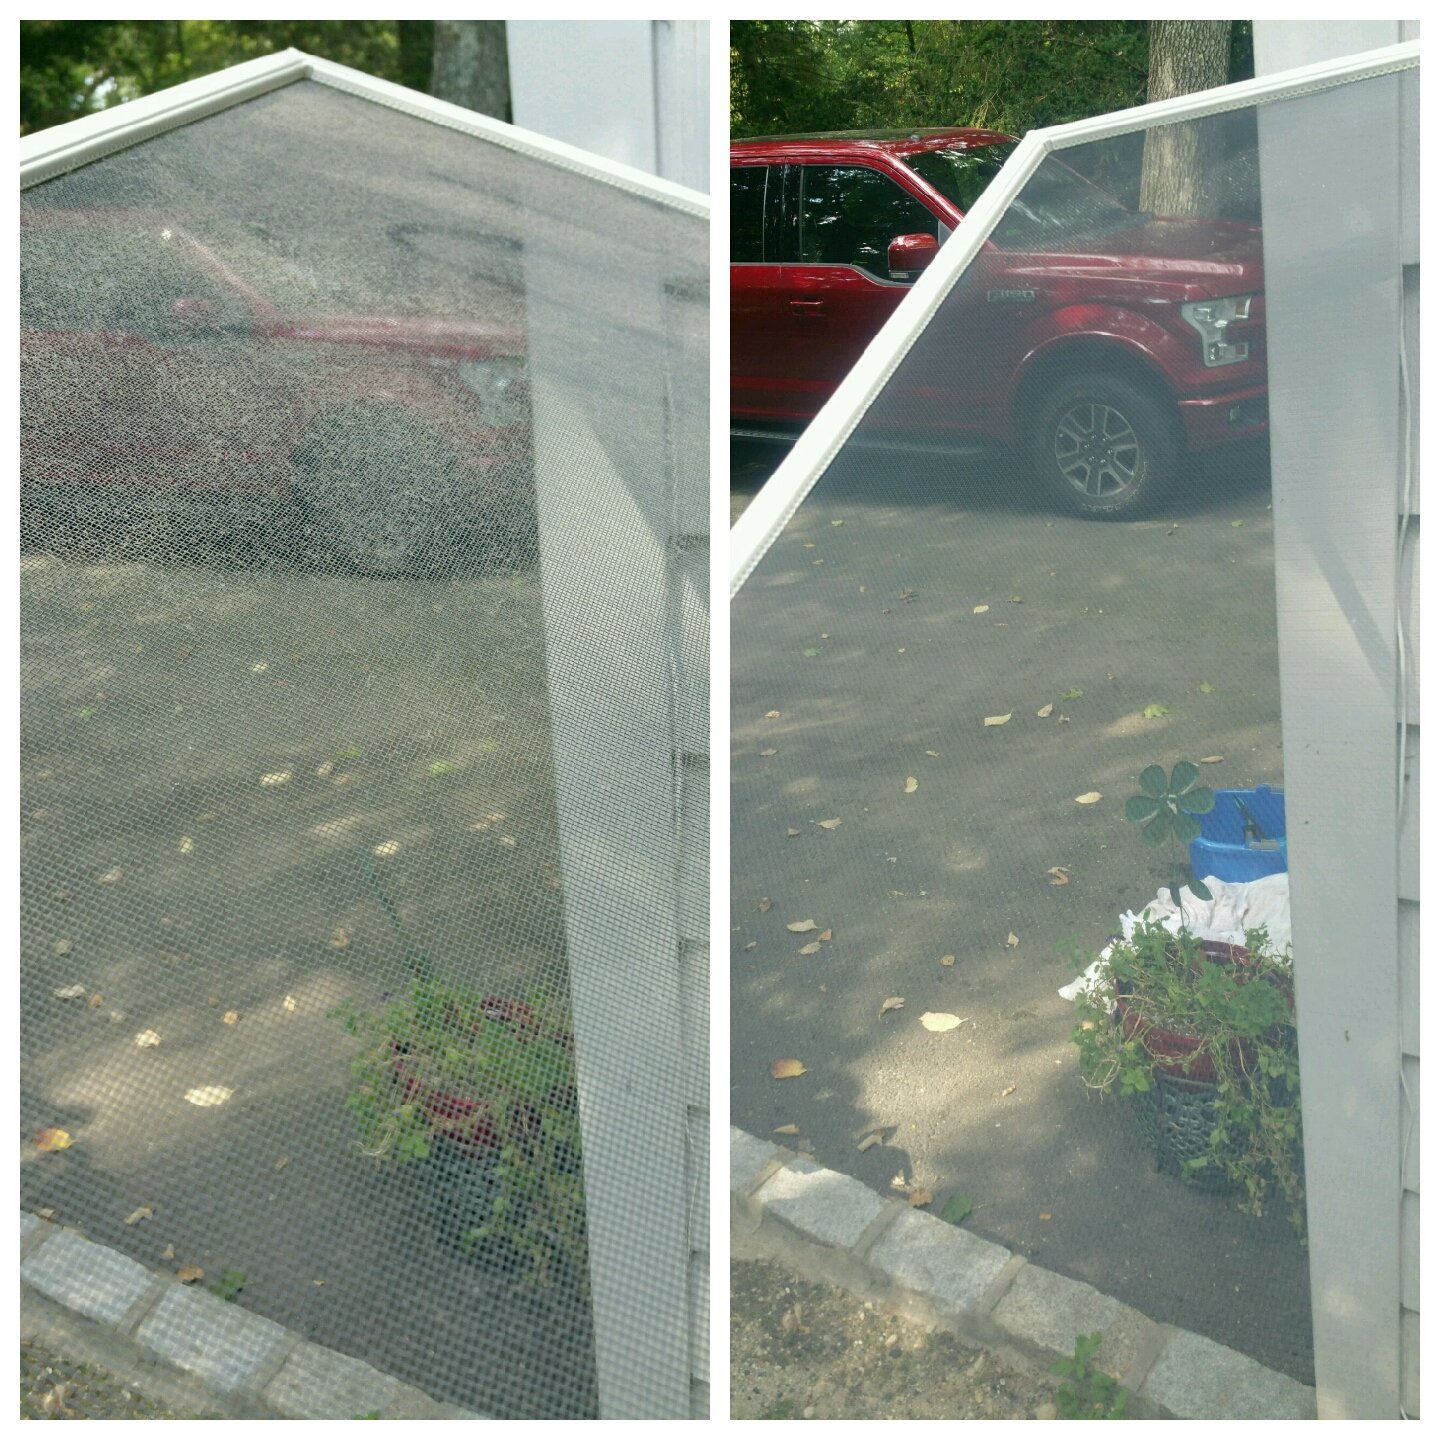 New York long island cold spring harbor window and screen cleaning.